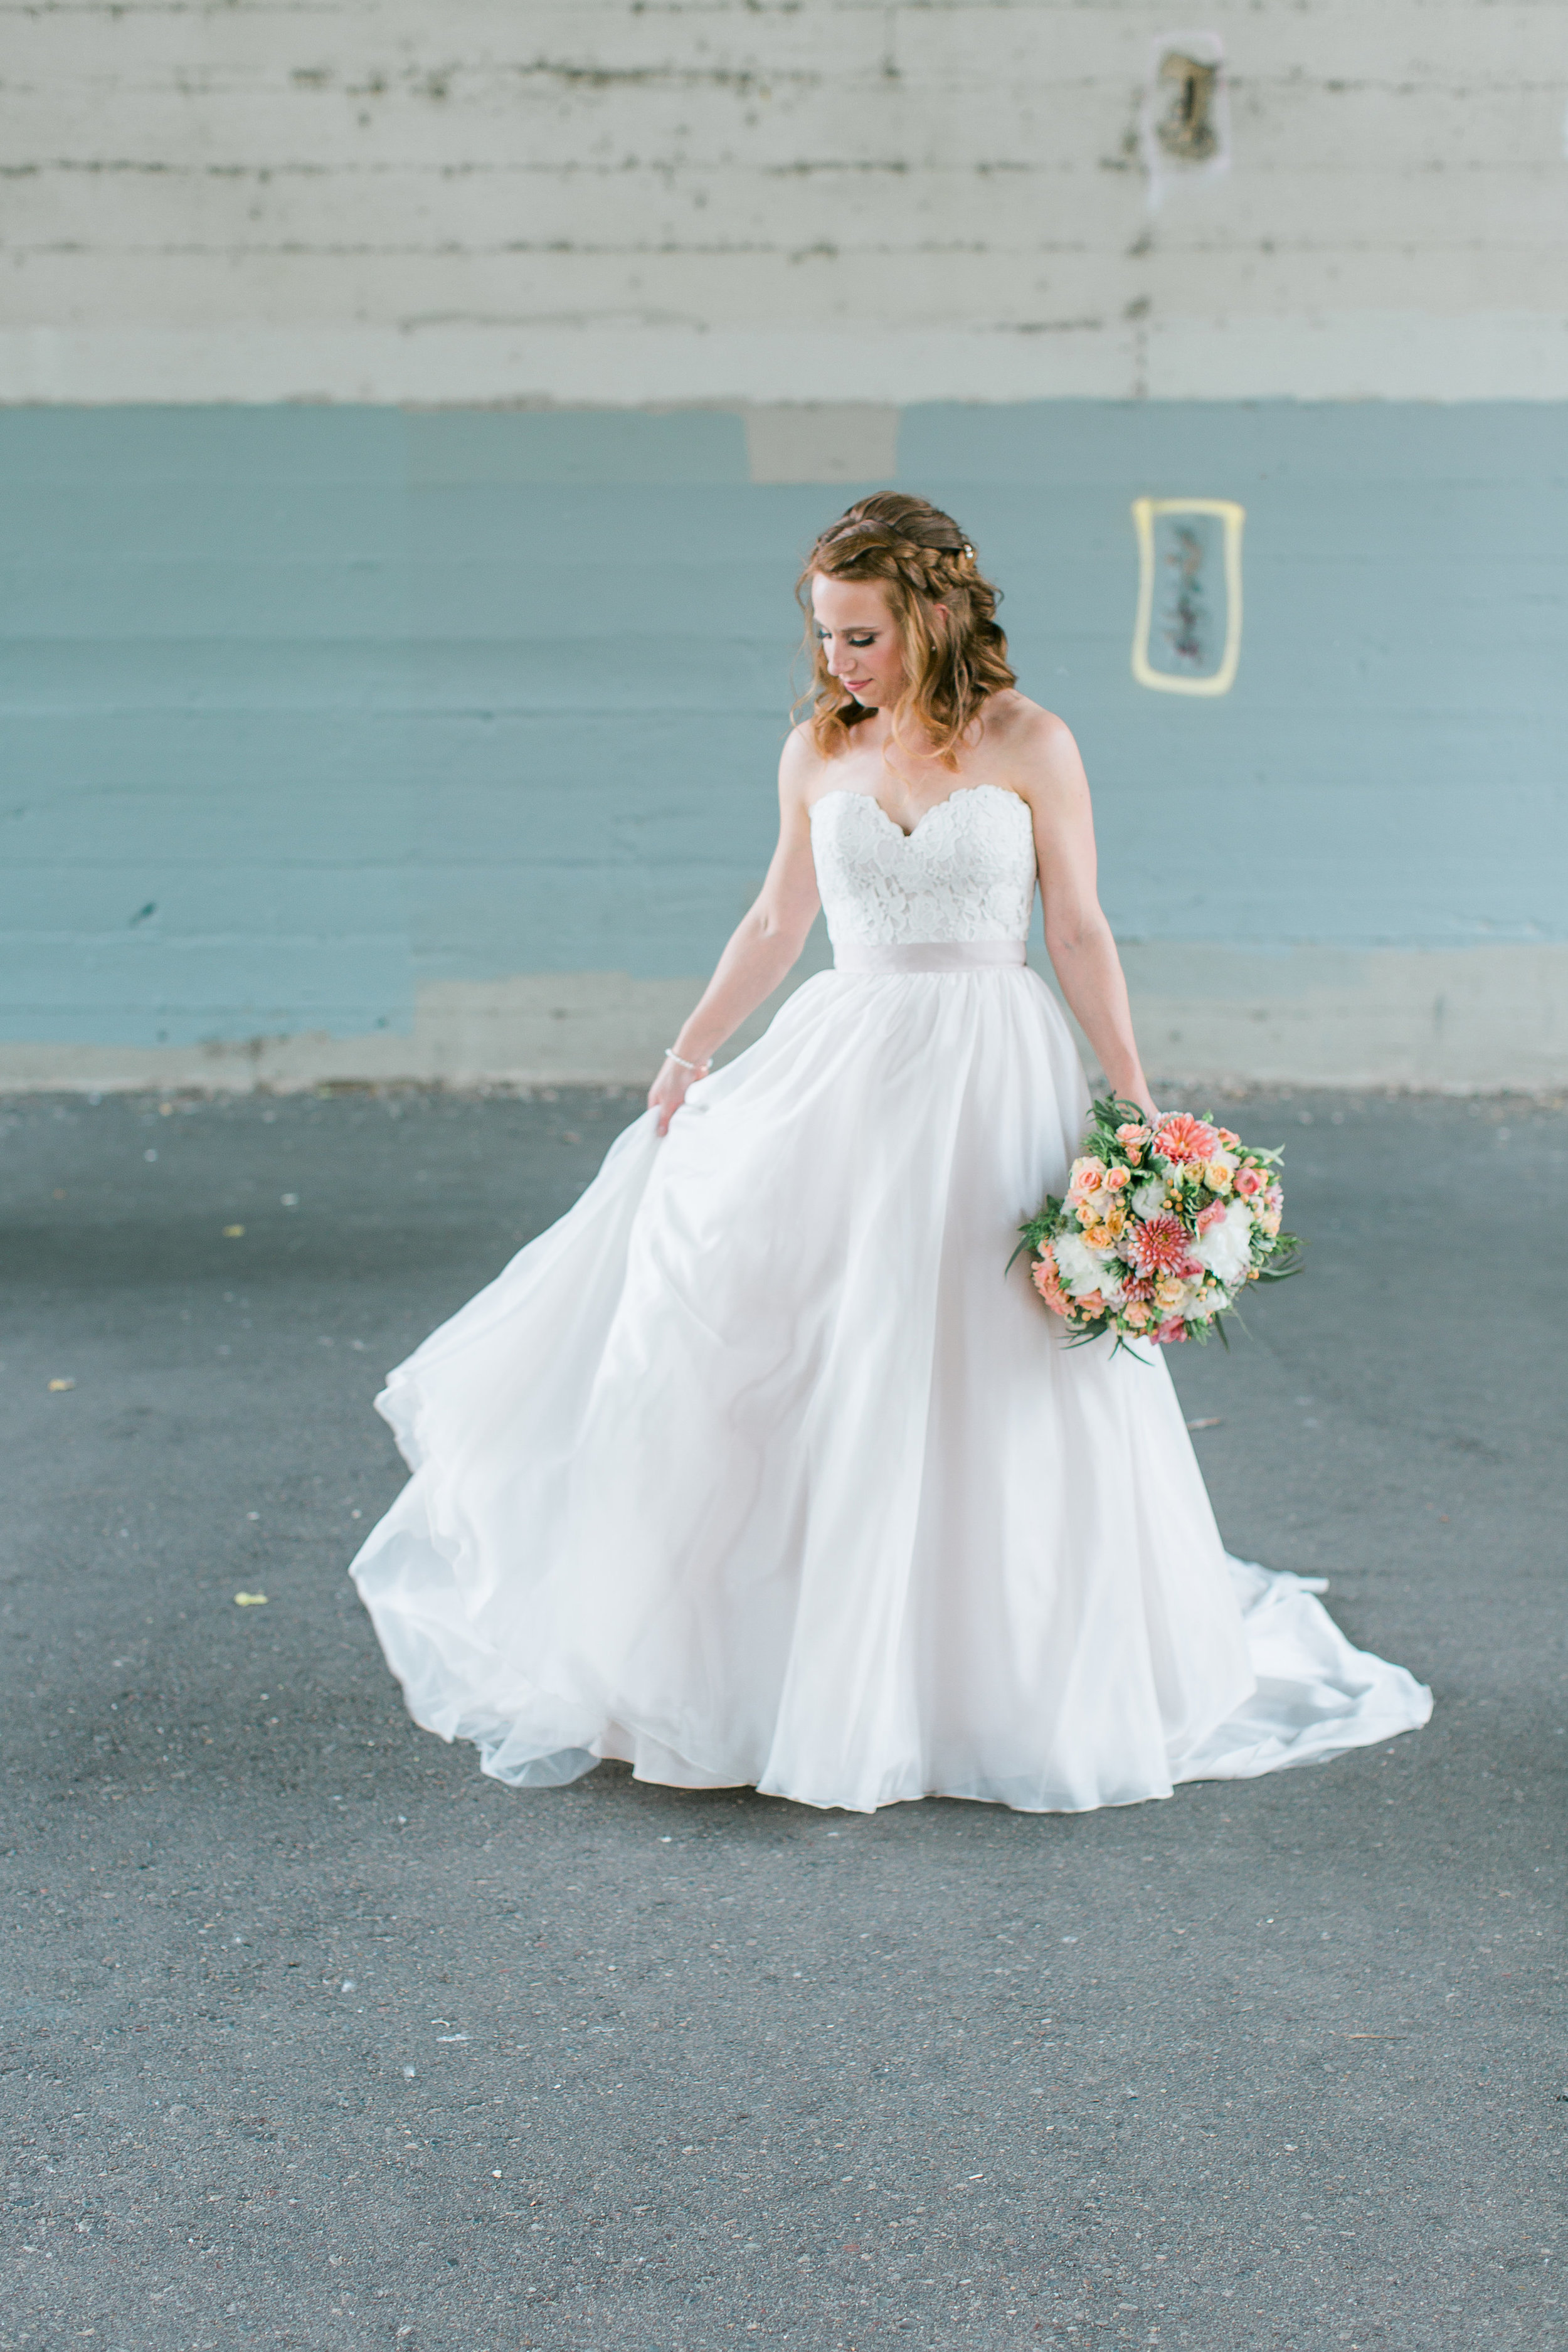 Bride with flowy Essence of Australia wedding dress in urban city setting in St. Anthony Main at Minneapolis Event Centers Wedding